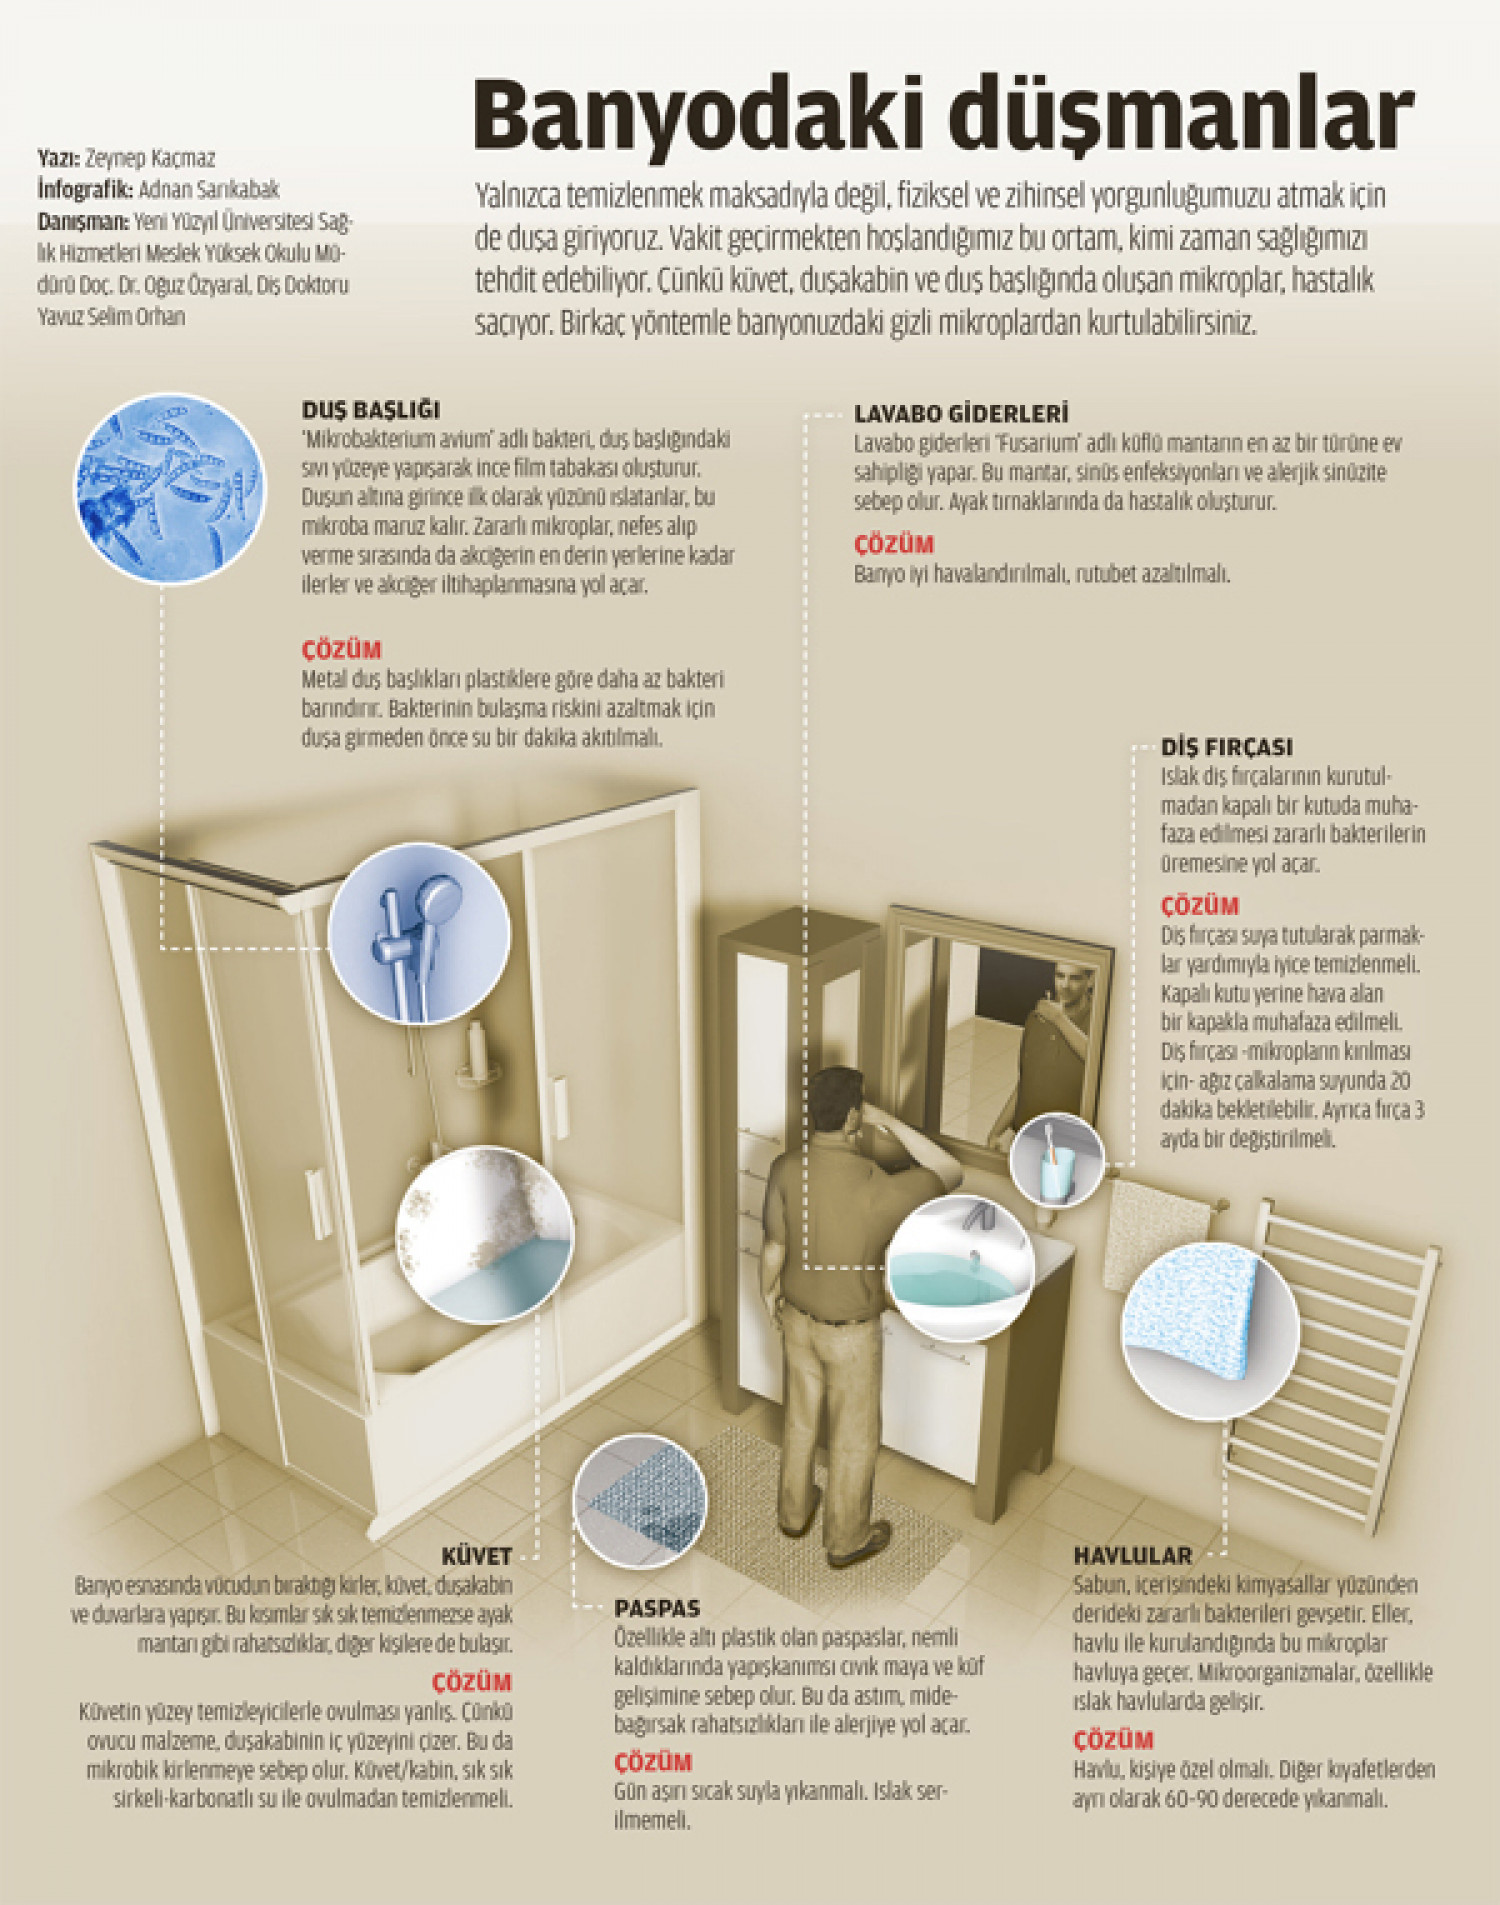 bath and microbes Infographic